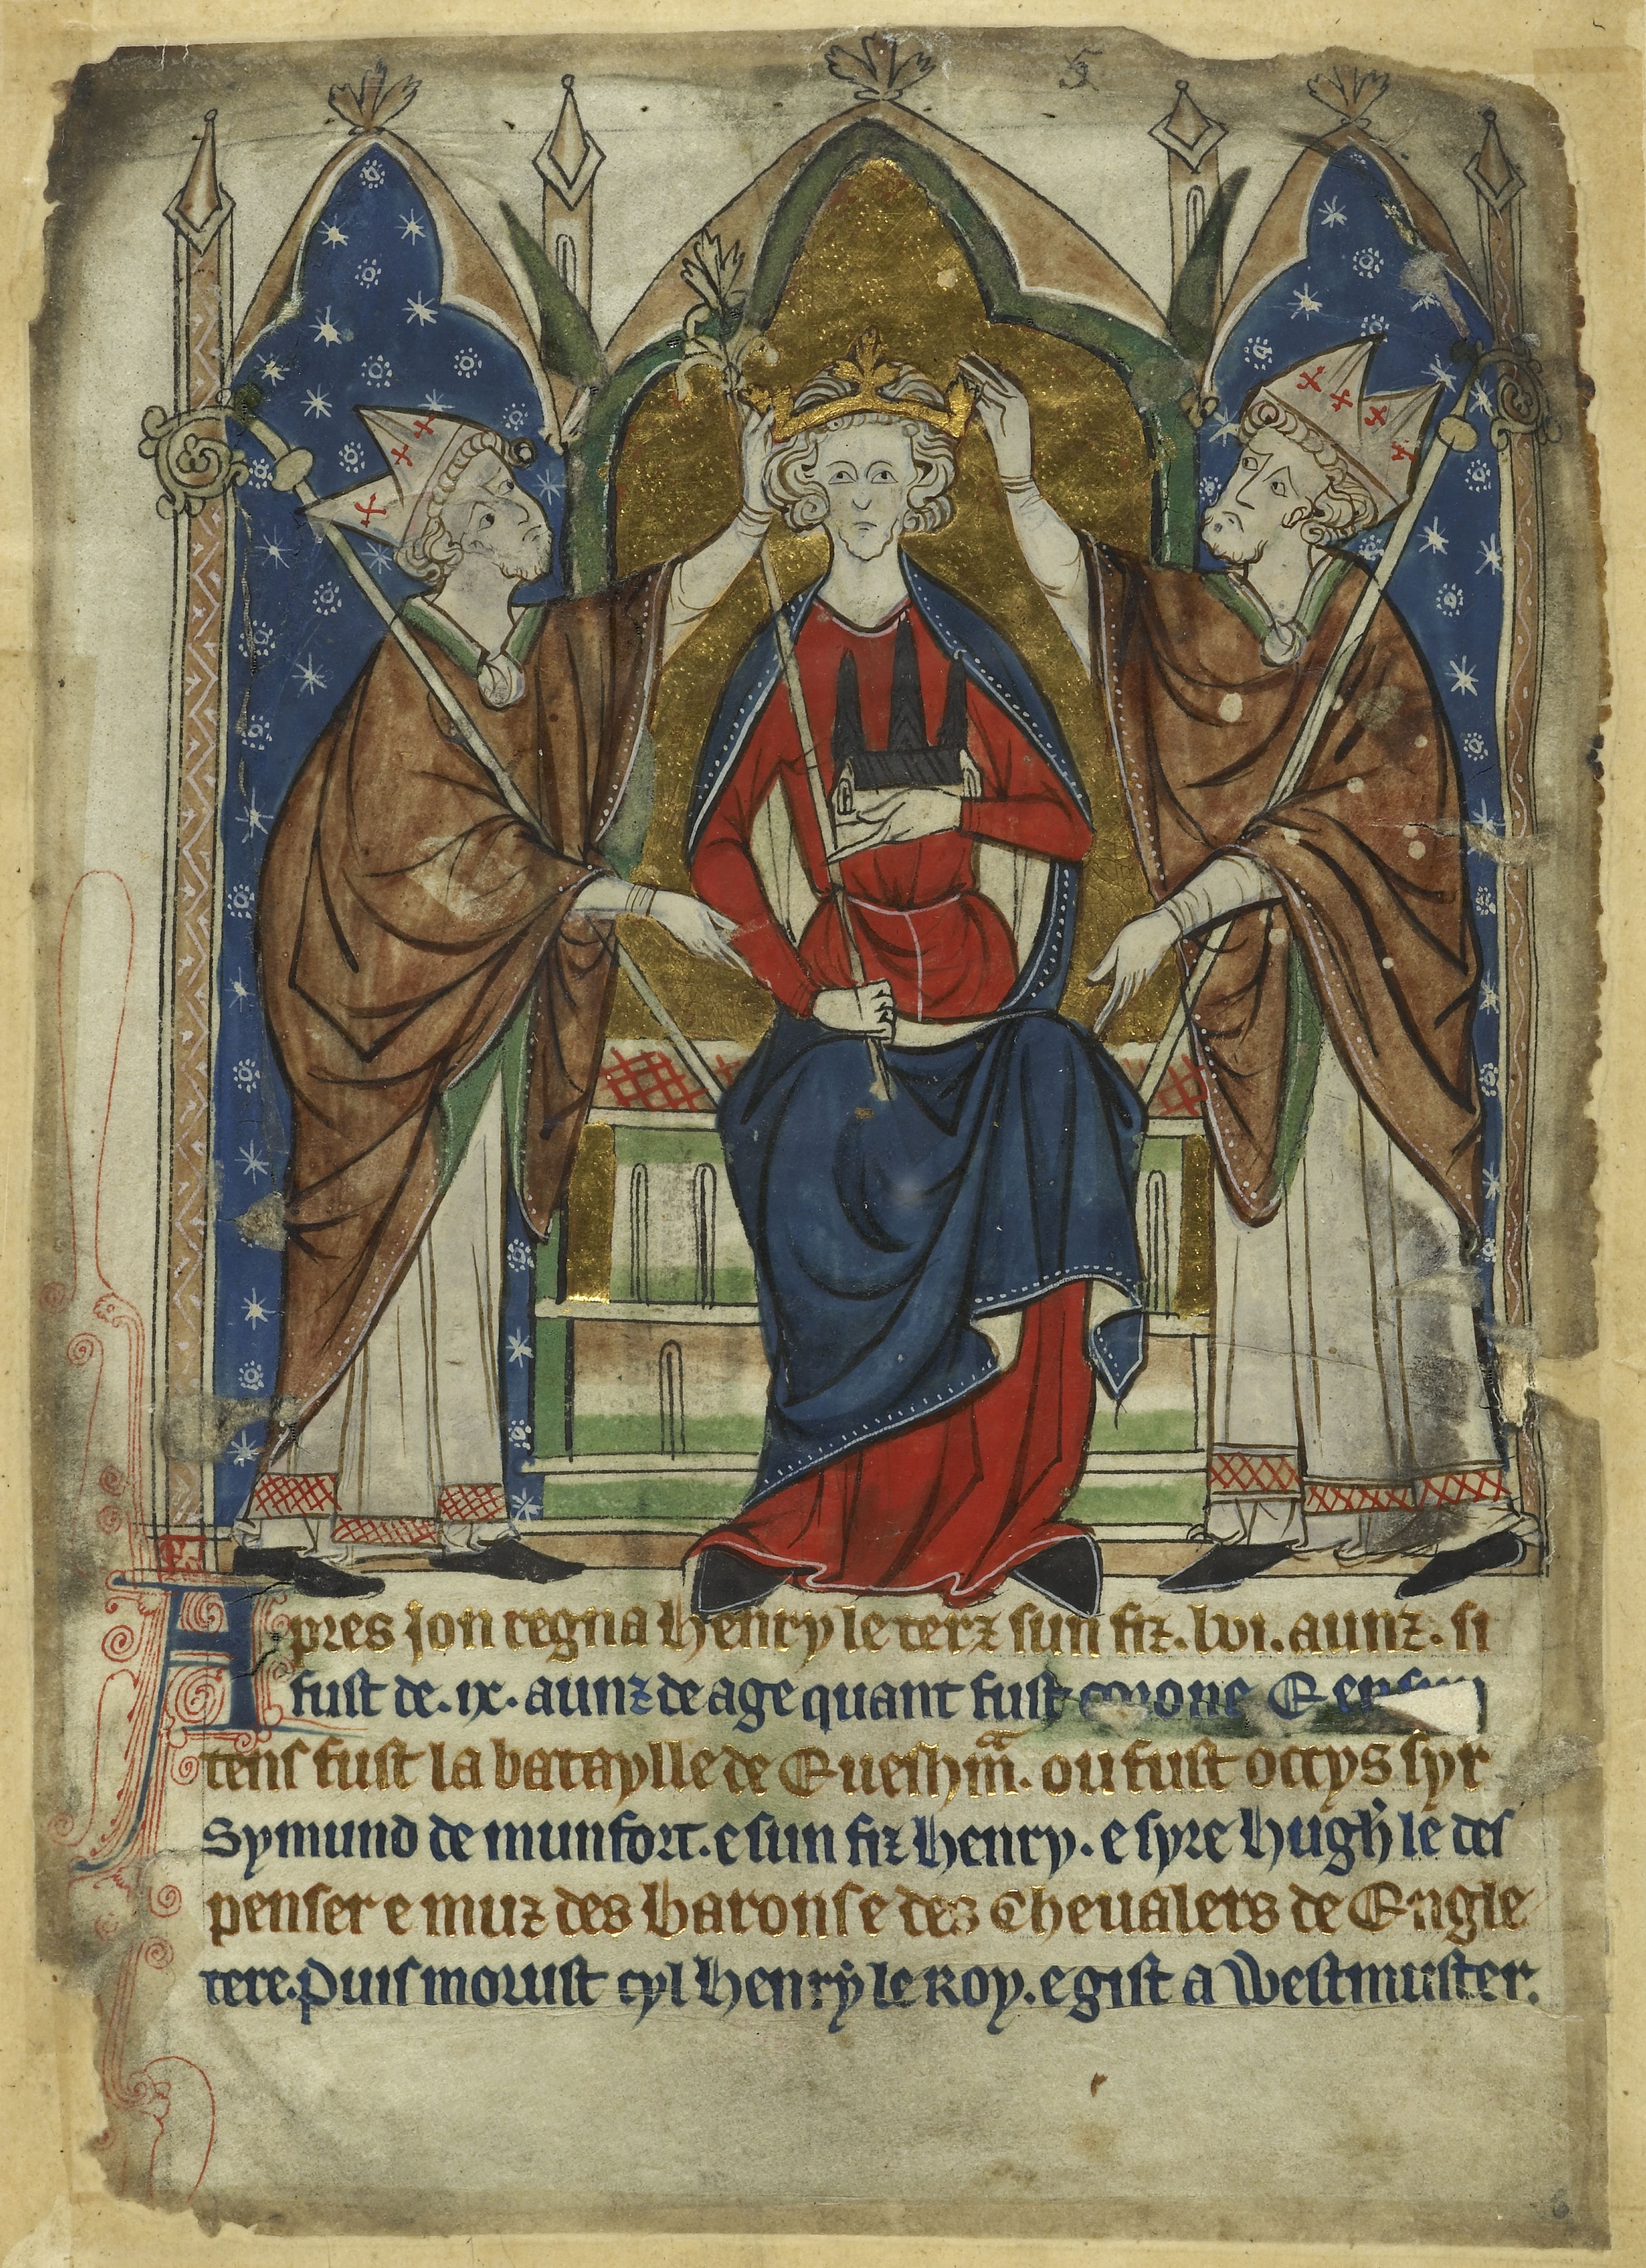 (1 of 2) The poisoning of King John (13th century)